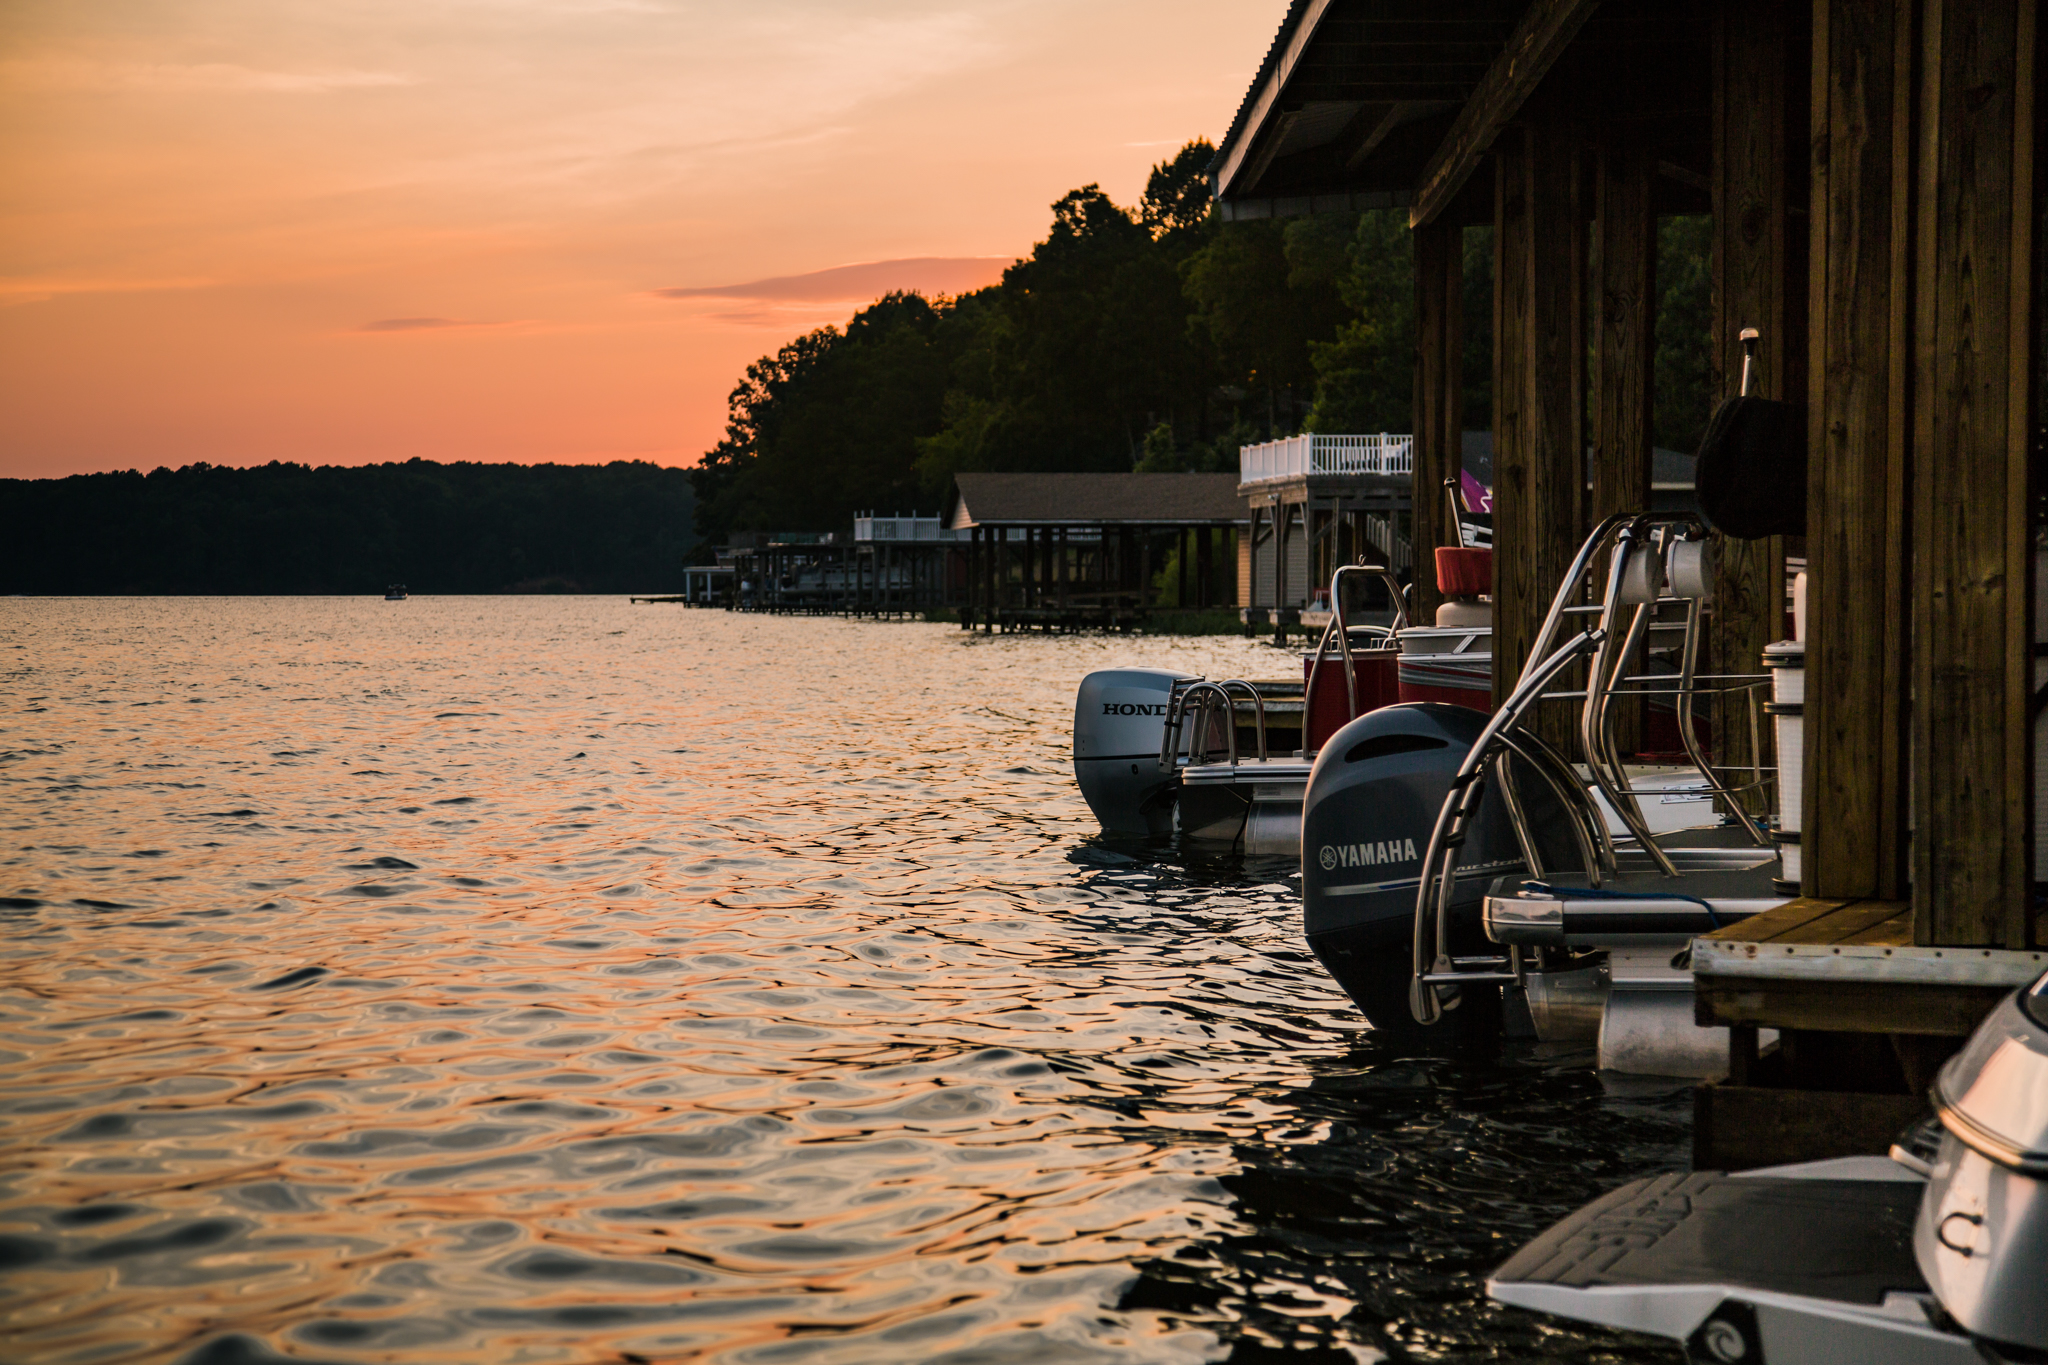 Boats at a dock in Warren County NC